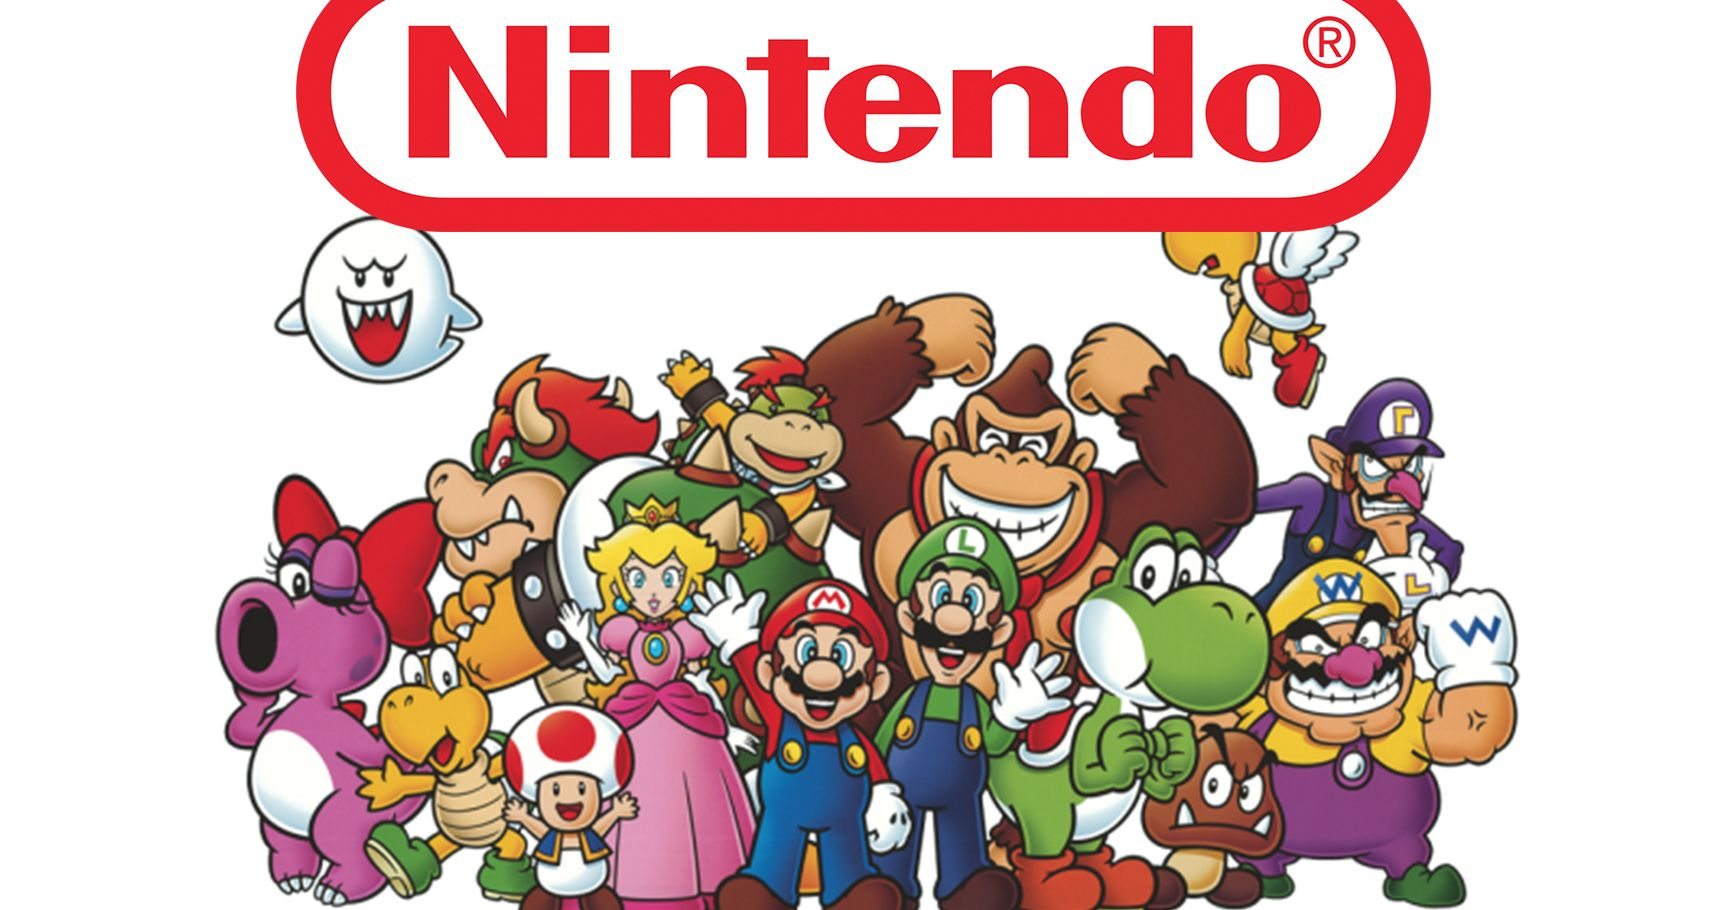 15 Cool Facts You Didn't Know About Nintendo